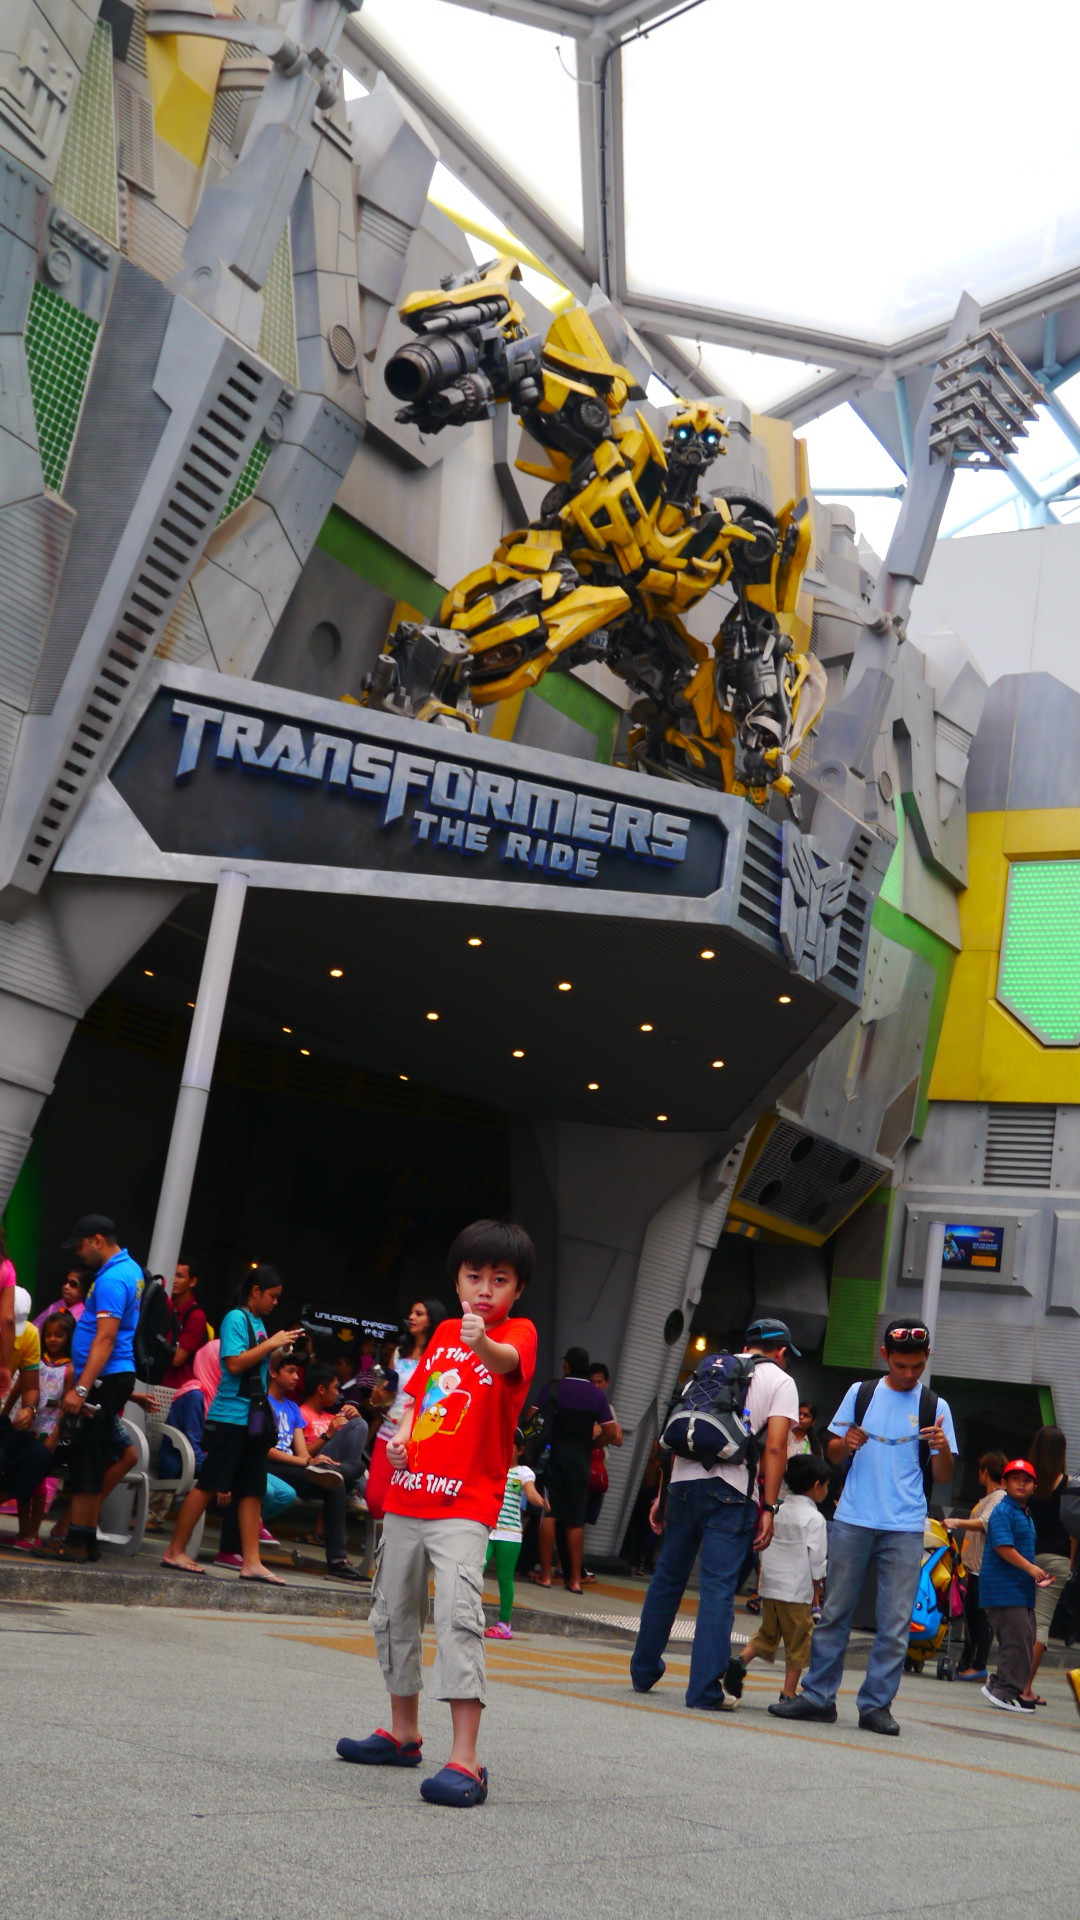 Finally the reason for the Singapore trip! The number 1 fan posing in front of the Transformer ride!  Oh this made me sooo dizzy, I closed my eyes half of the whole experience!! But Bubba was the happiest!